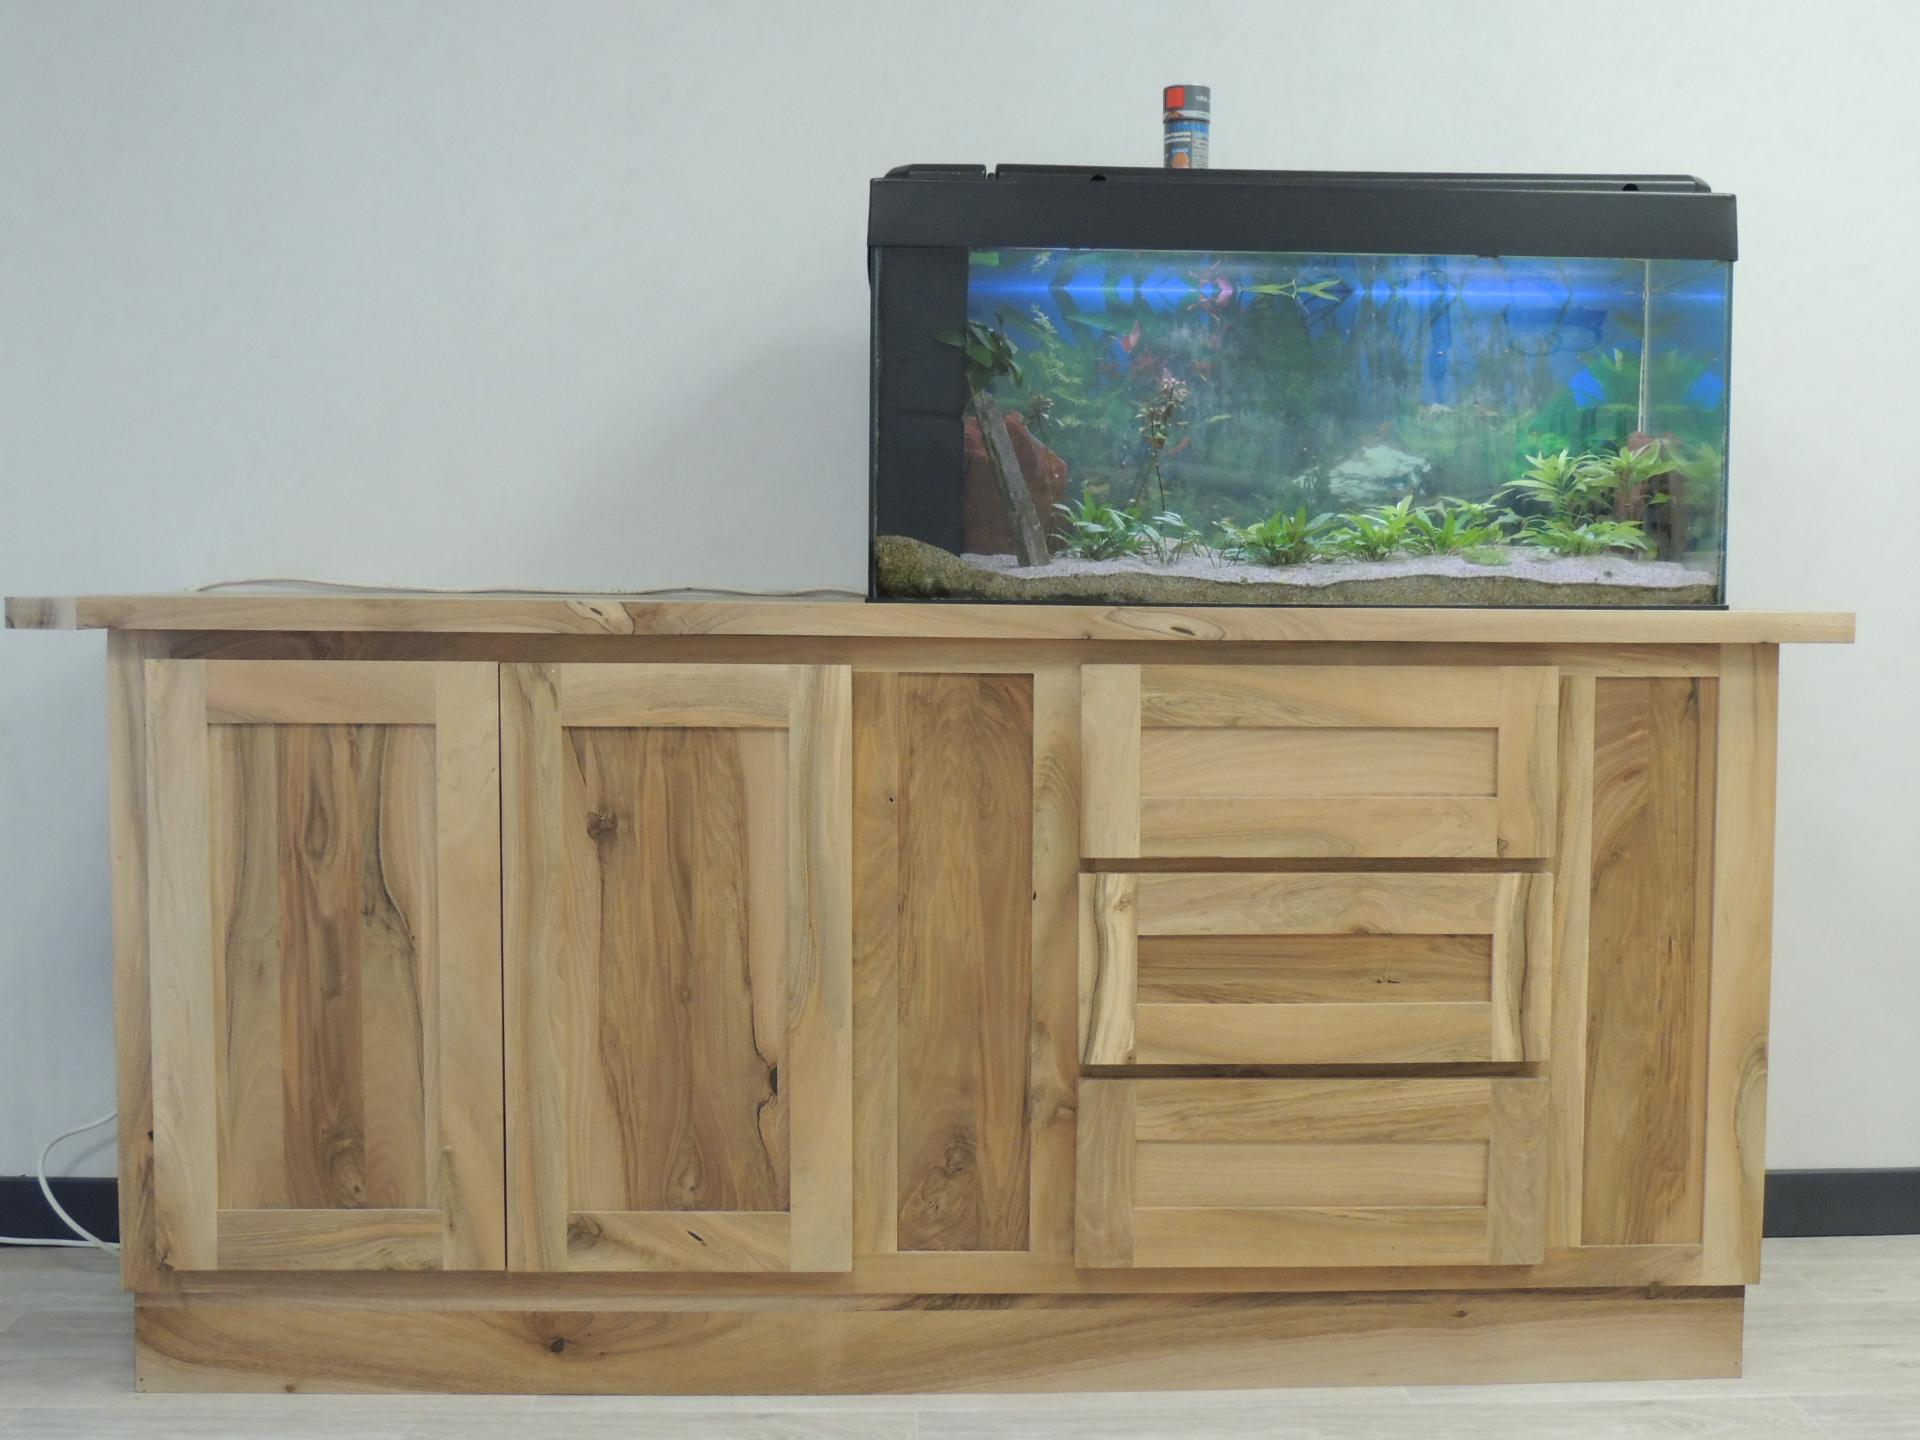 meuble tv aquarium finest meuble tv aquarium with meuble tv aquarium affordable meuble tv. Black Bedroom Furniture Sets. Home Design Ideas